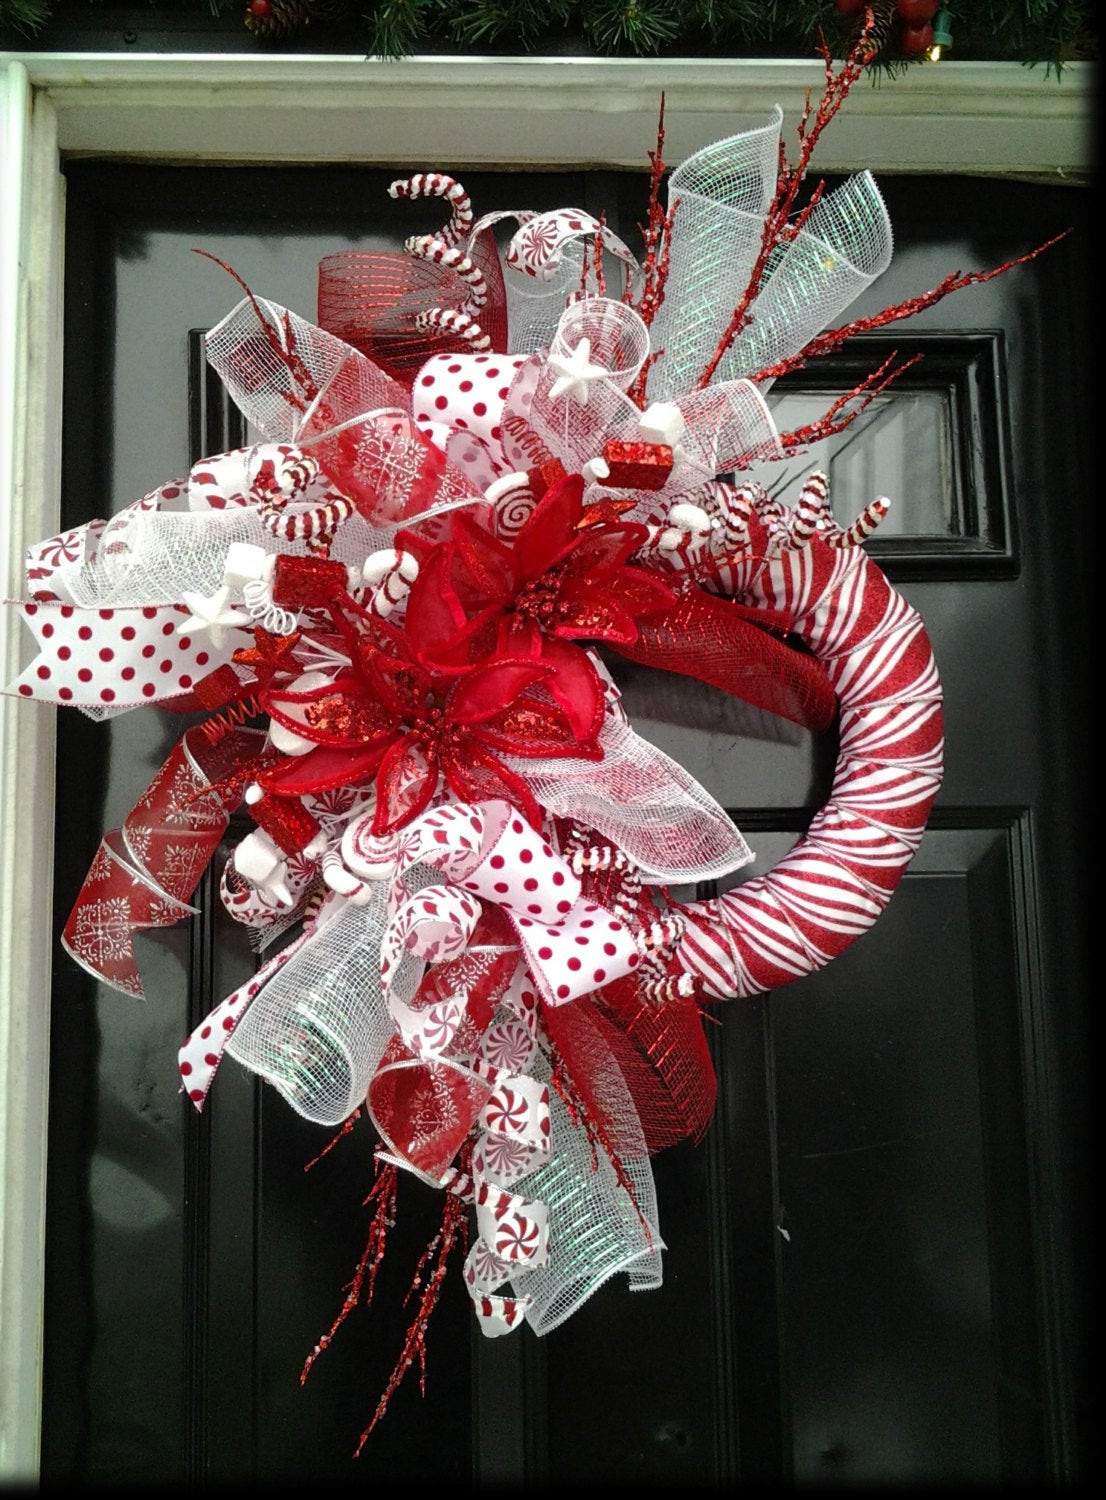 Candy Cane Christmas Wreath  Christmas Wreath Candy Cane Wreath Peppermint Wreath